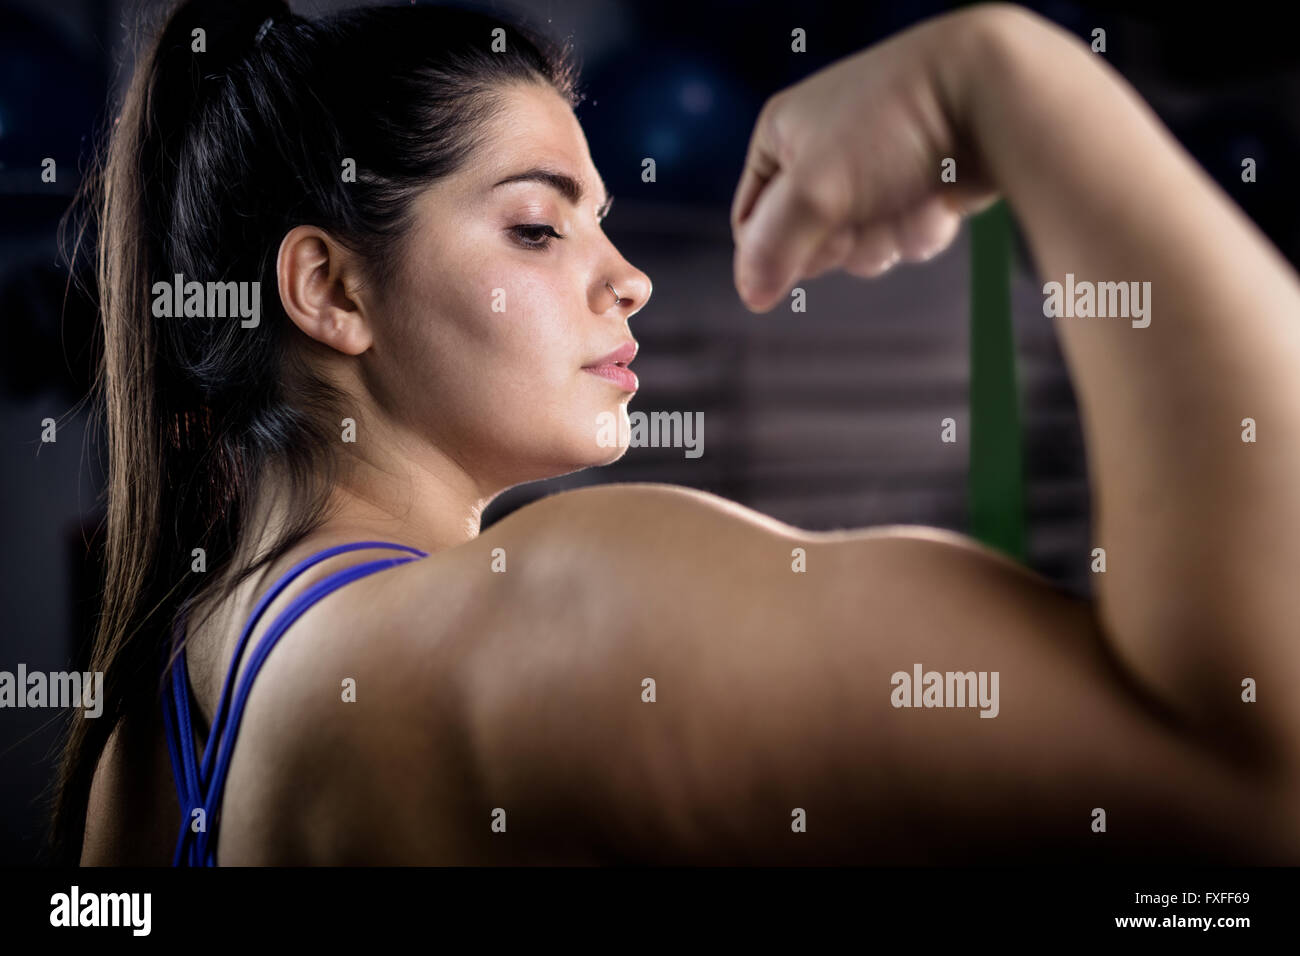 Woman flexing muscles Photo Stock